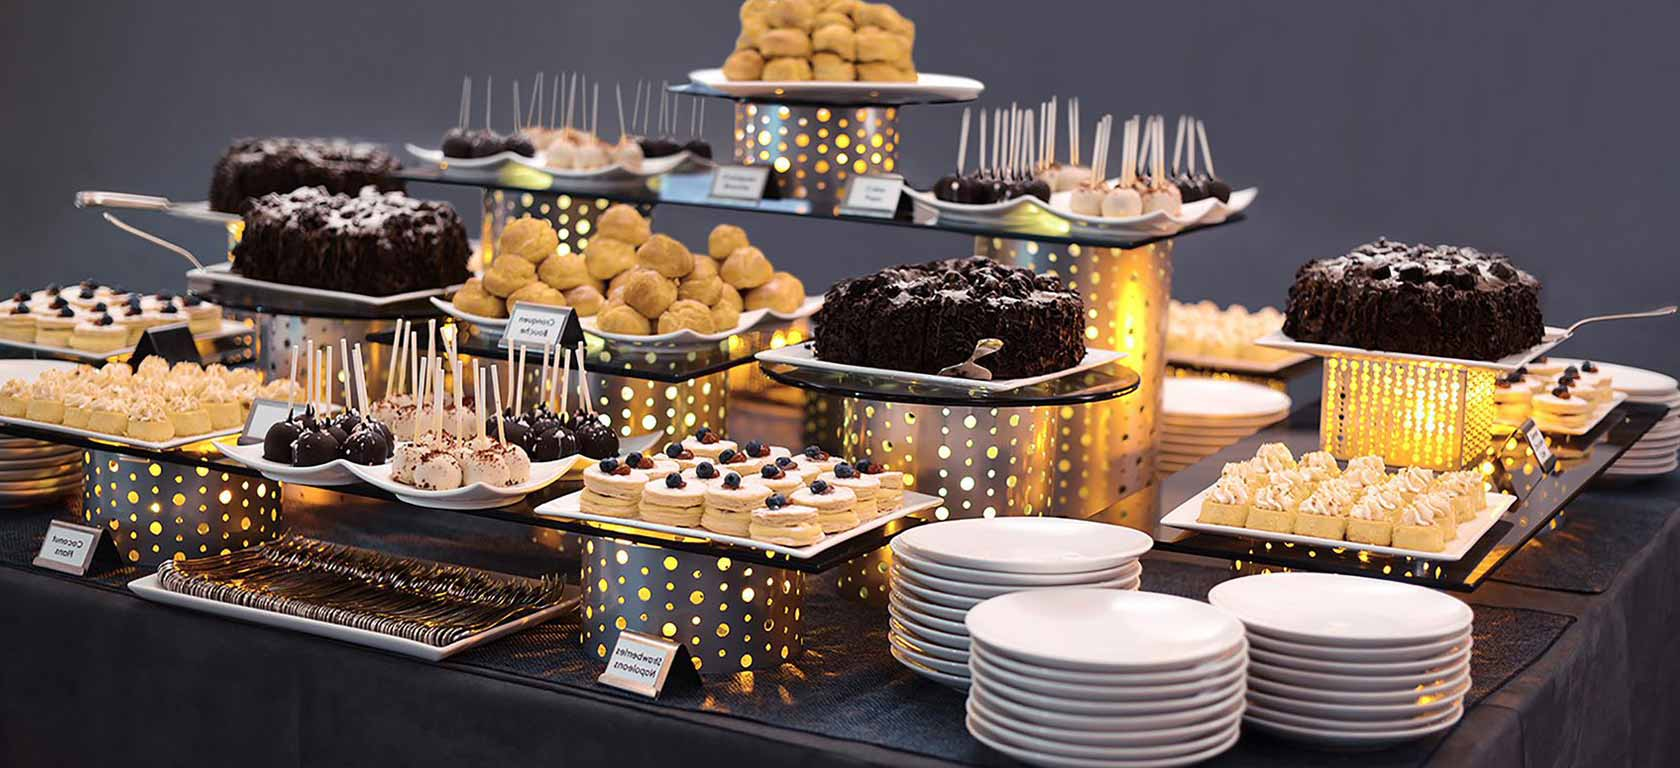 Buffet array of deserts on chrome utensils and risers.